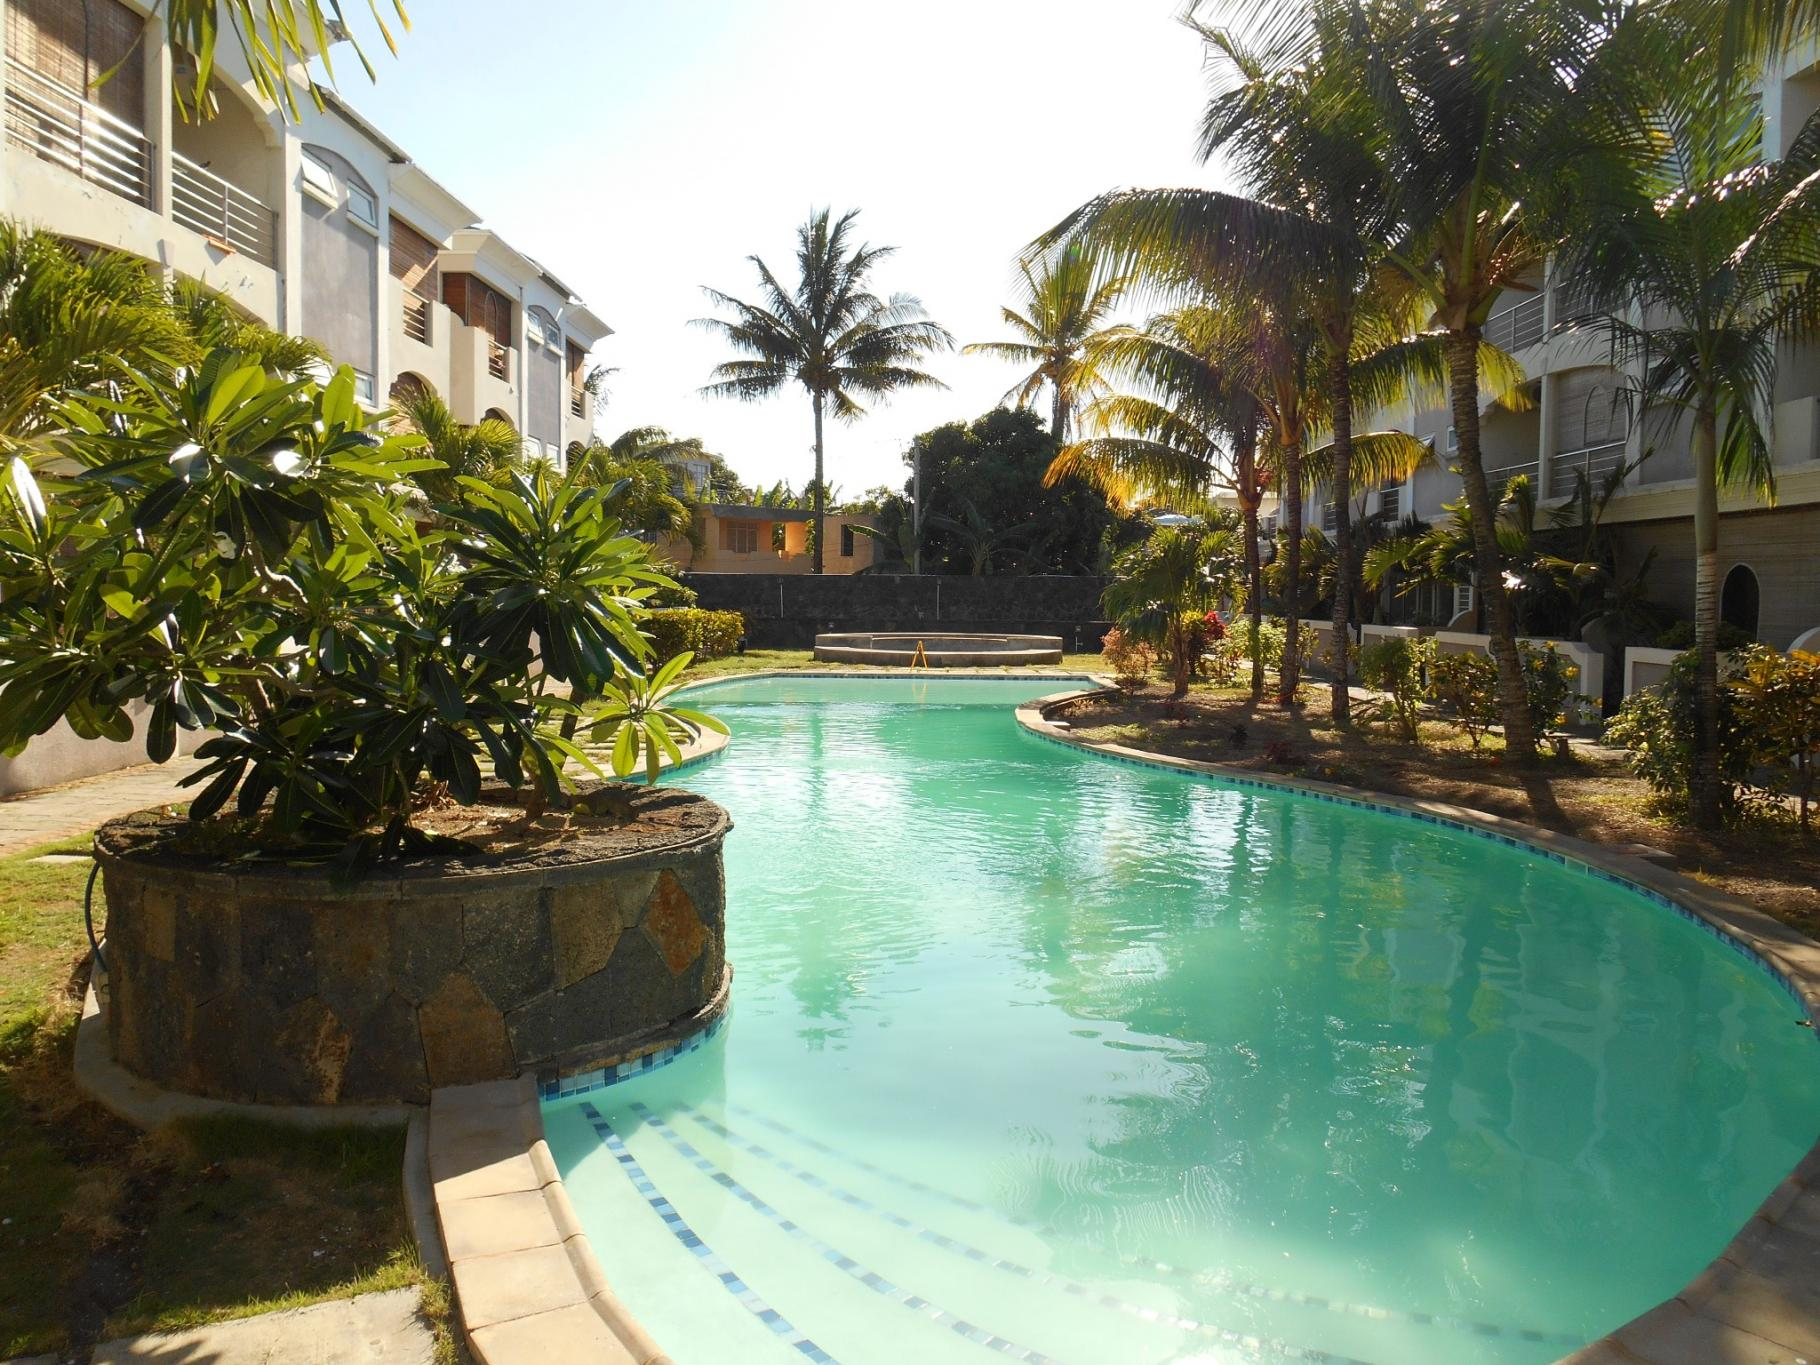 FOR SALE – Nice duplex of 185 m2 in Grand Bay, 2 minutes away from the beach.